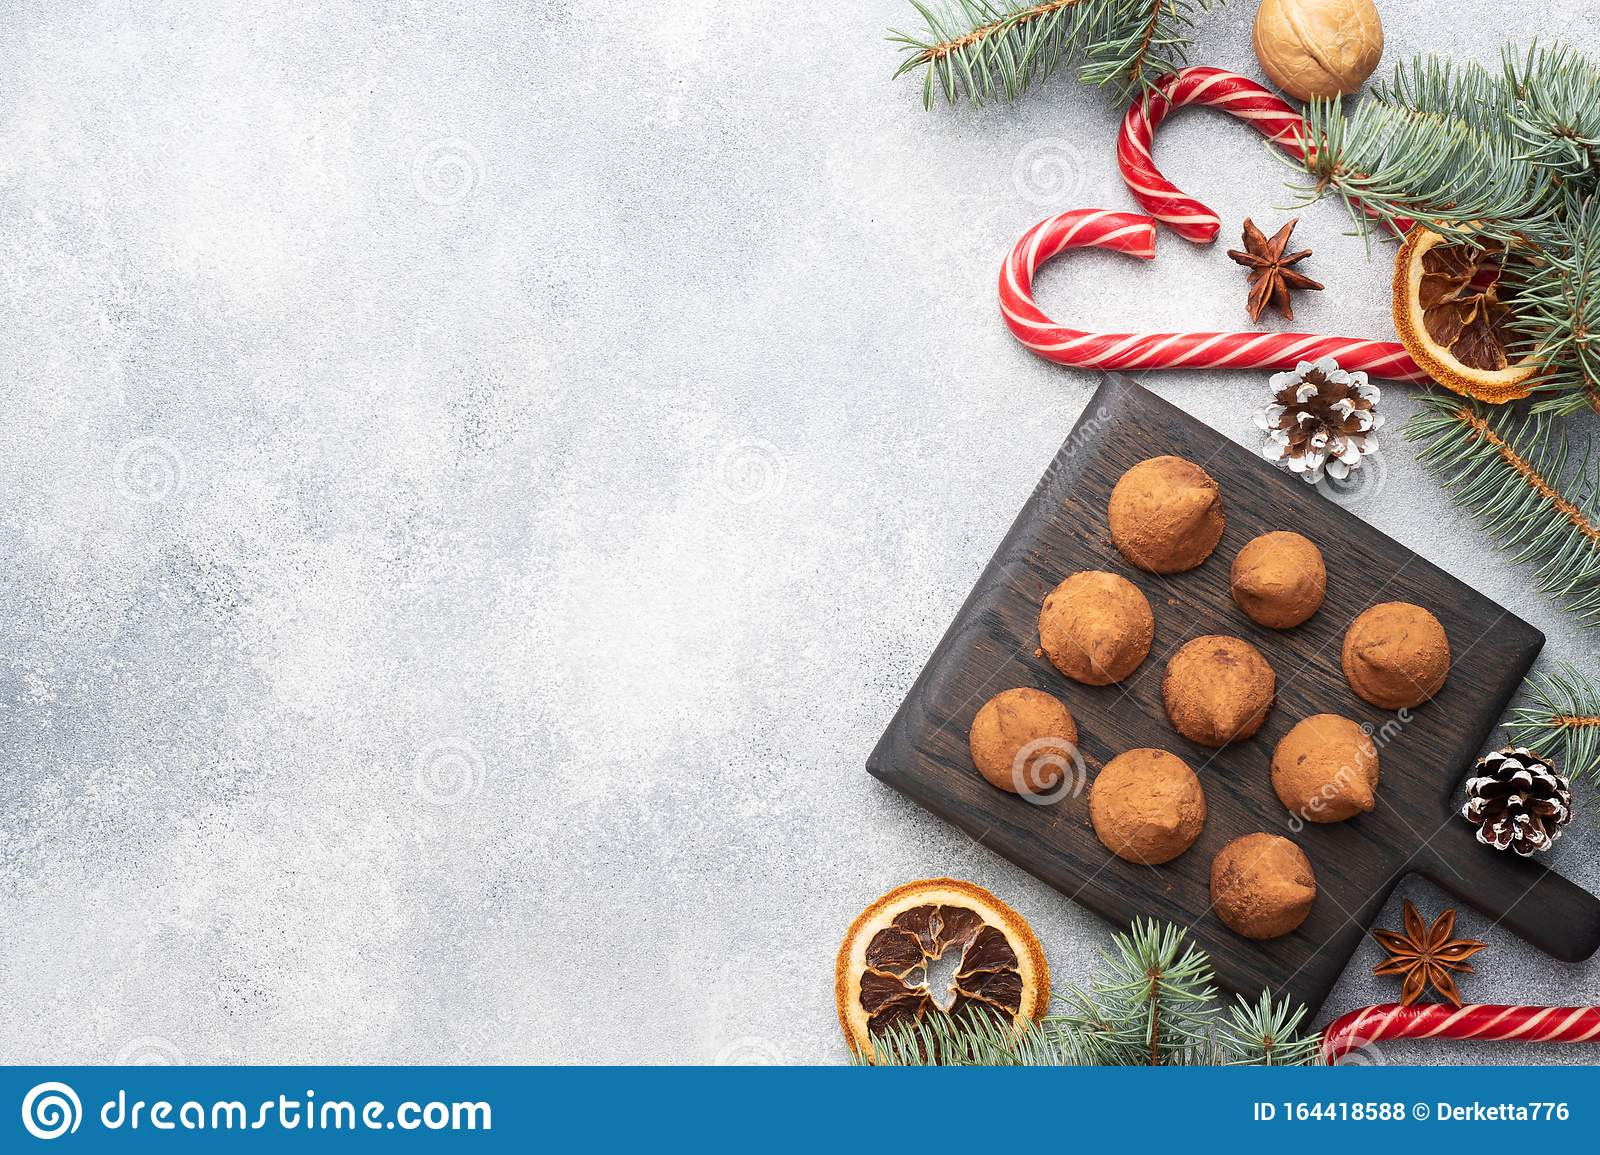 Delicious chocolate truffles sprinkled with cocoa powder on a wooden stand. Christmas tree scenery concept. Copy space